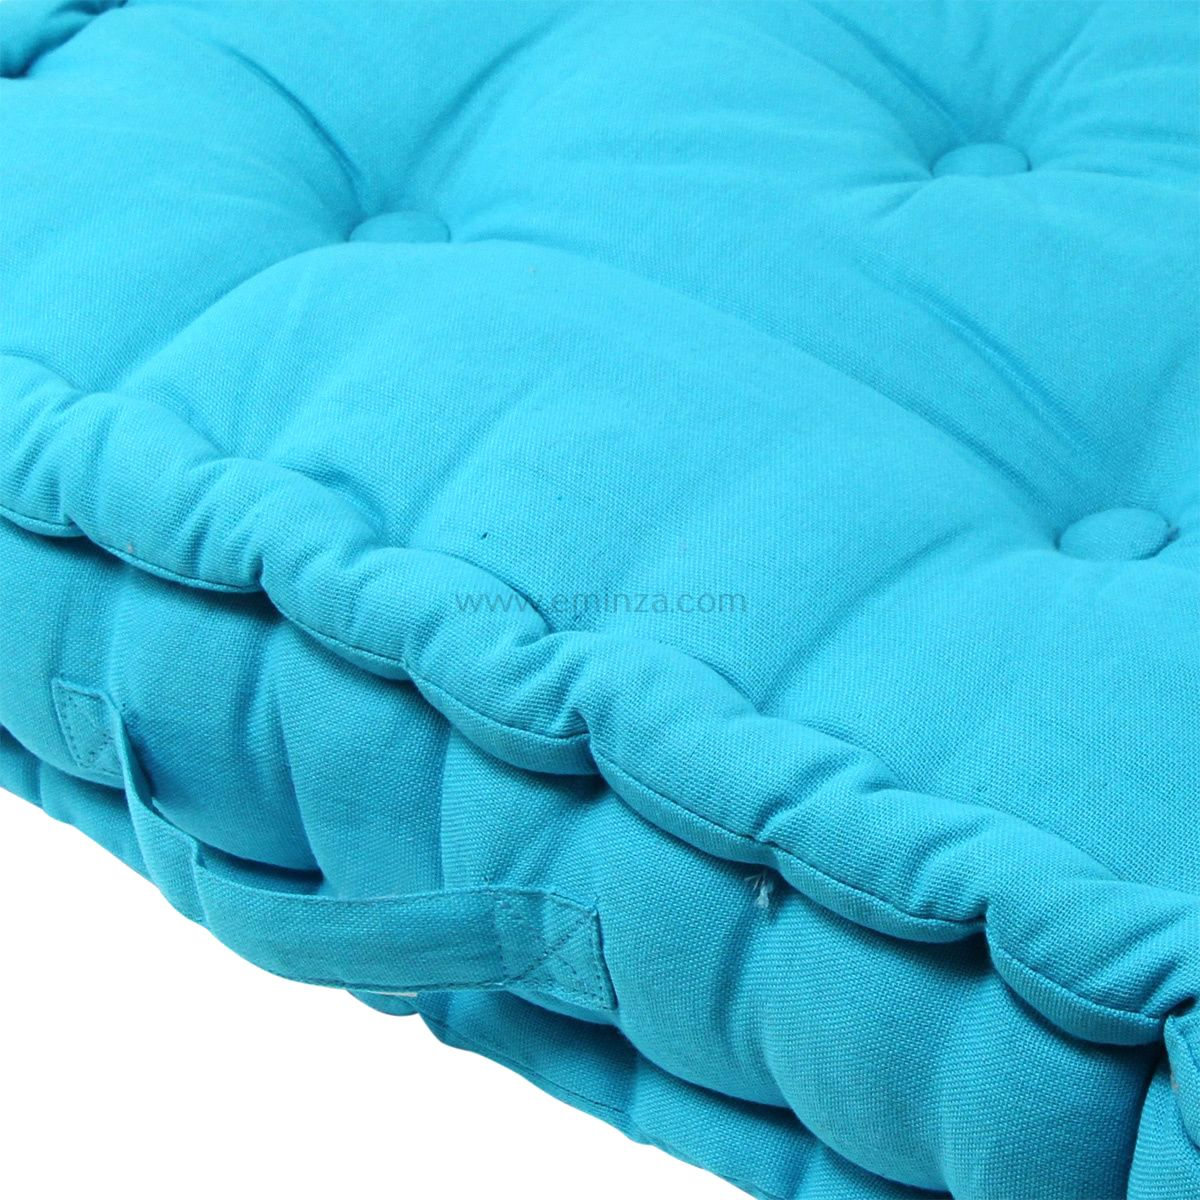 coussin de sol 50 cm etna turquoise coussin de sol et. Black Bedroom Furniture Sets. Home Design Ideas